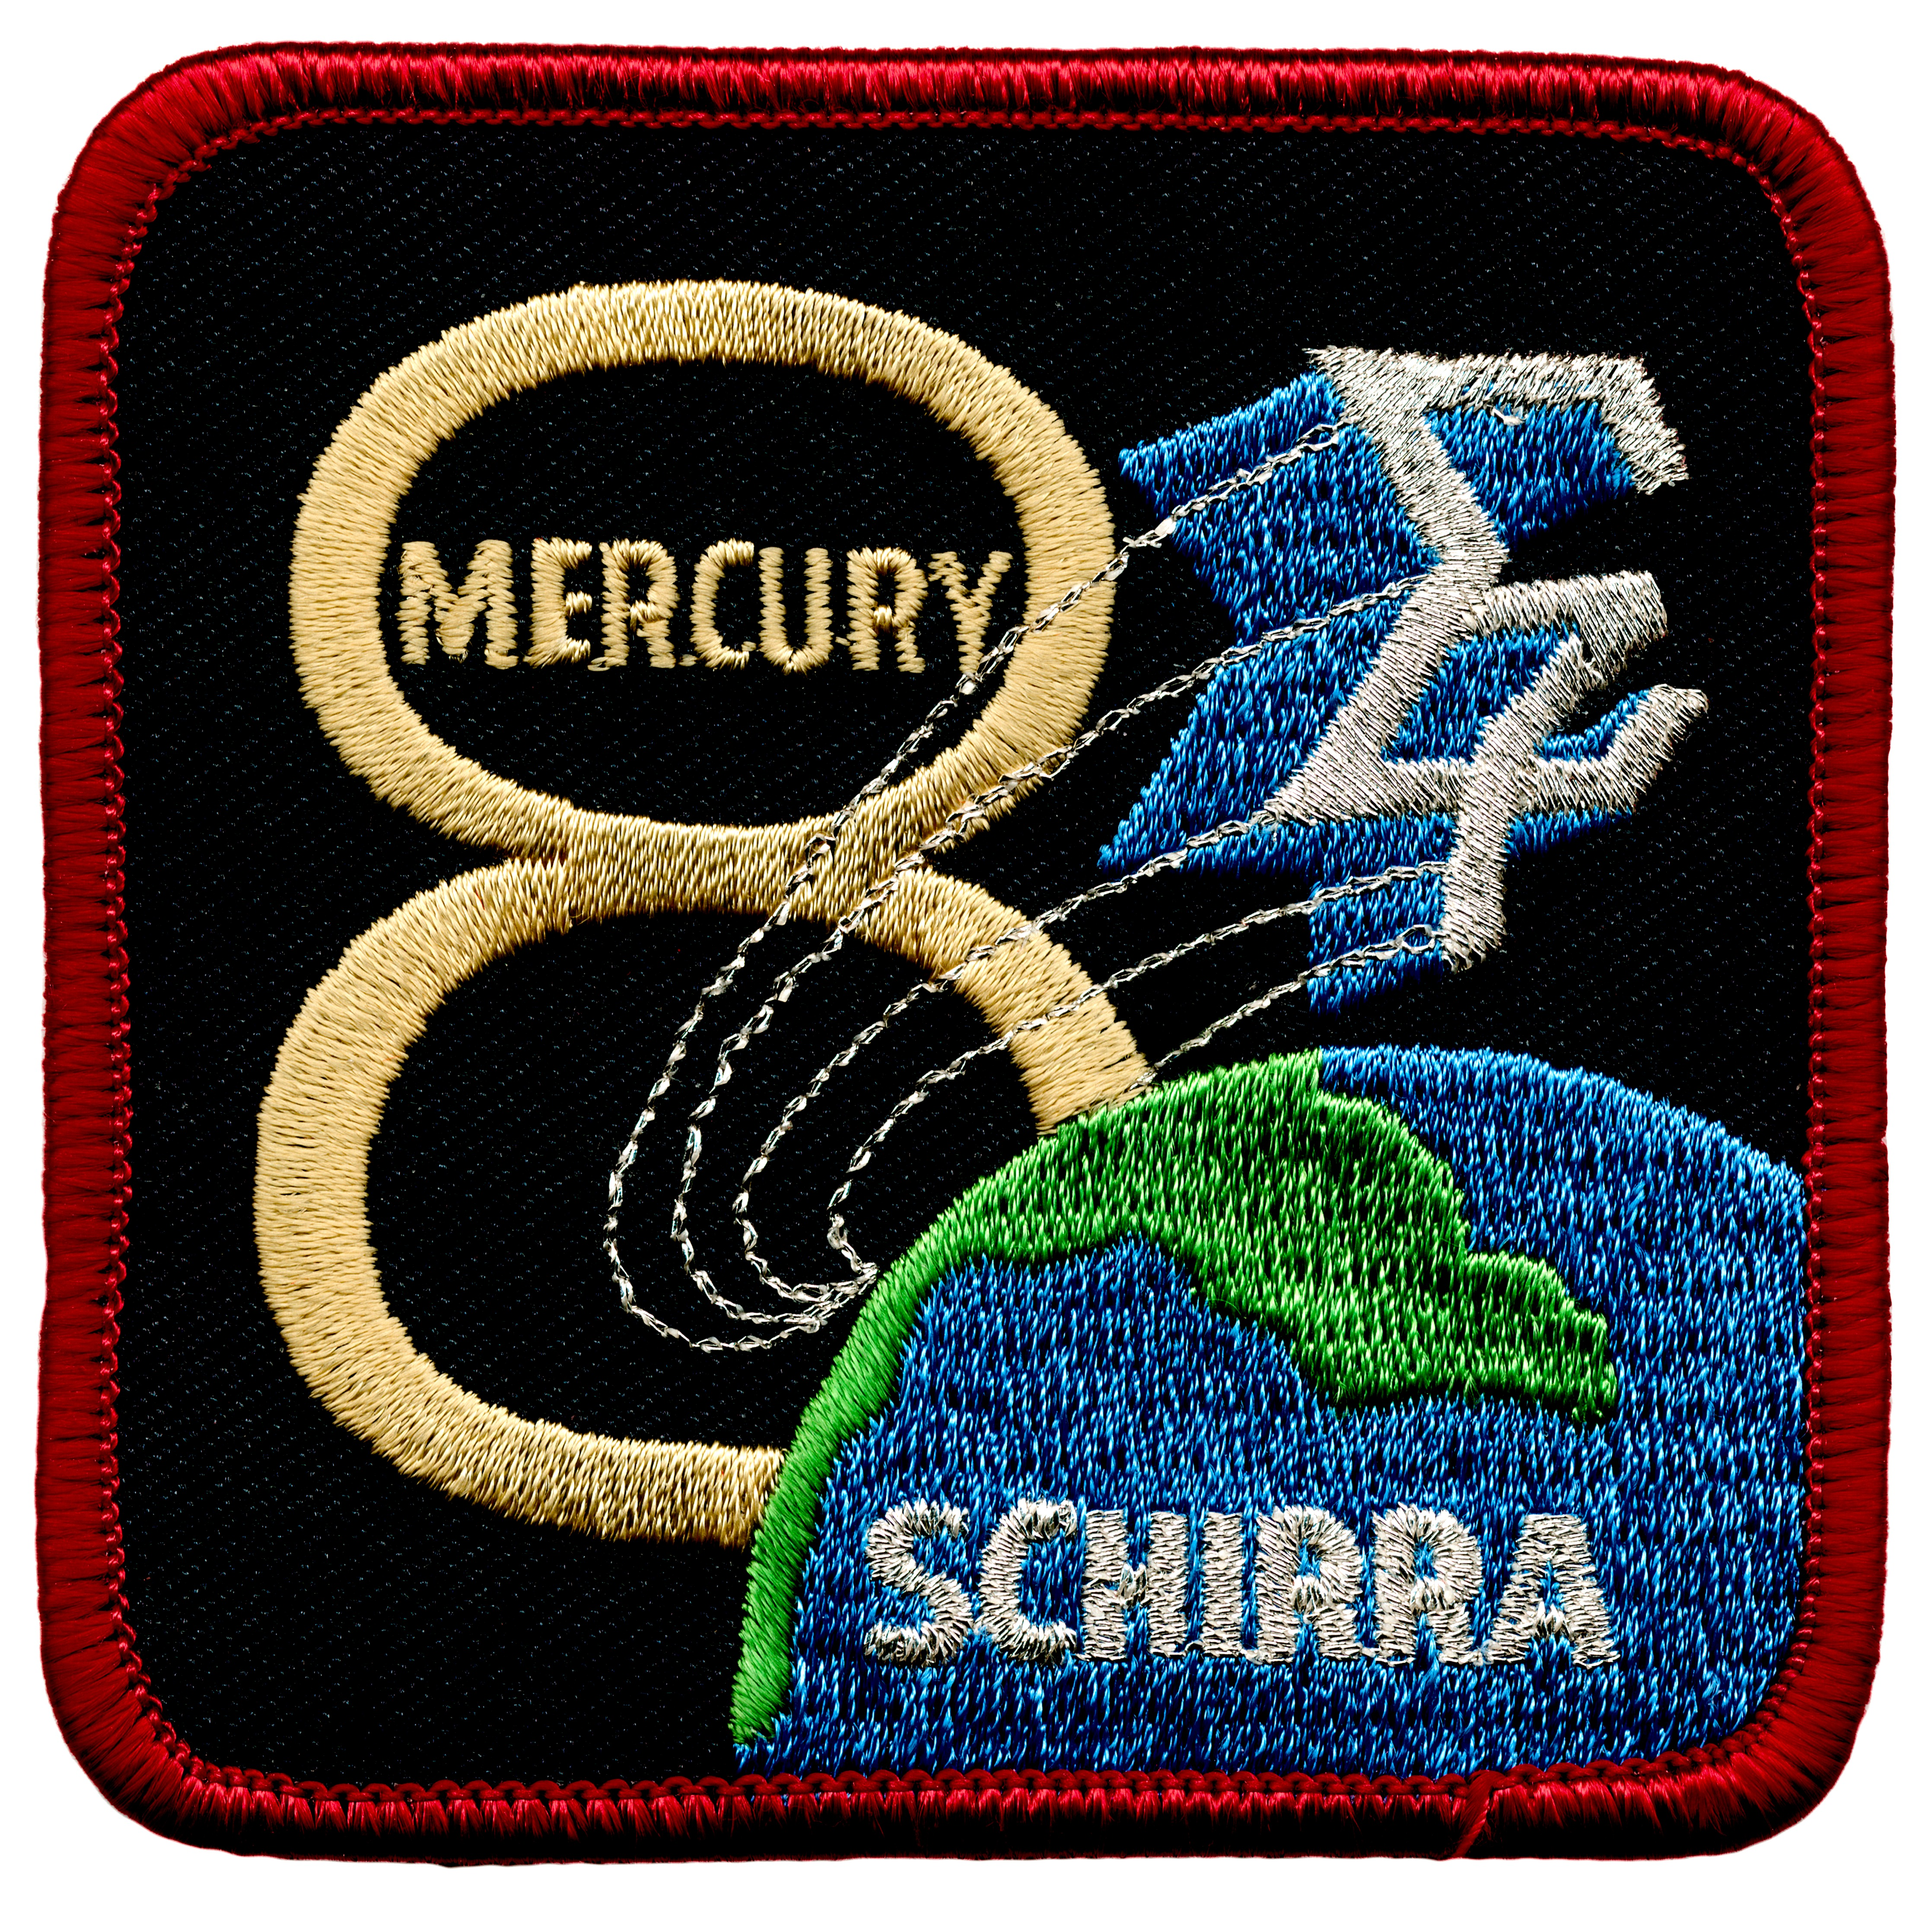 NASA Mercury Patches (page 4) - Pics about space